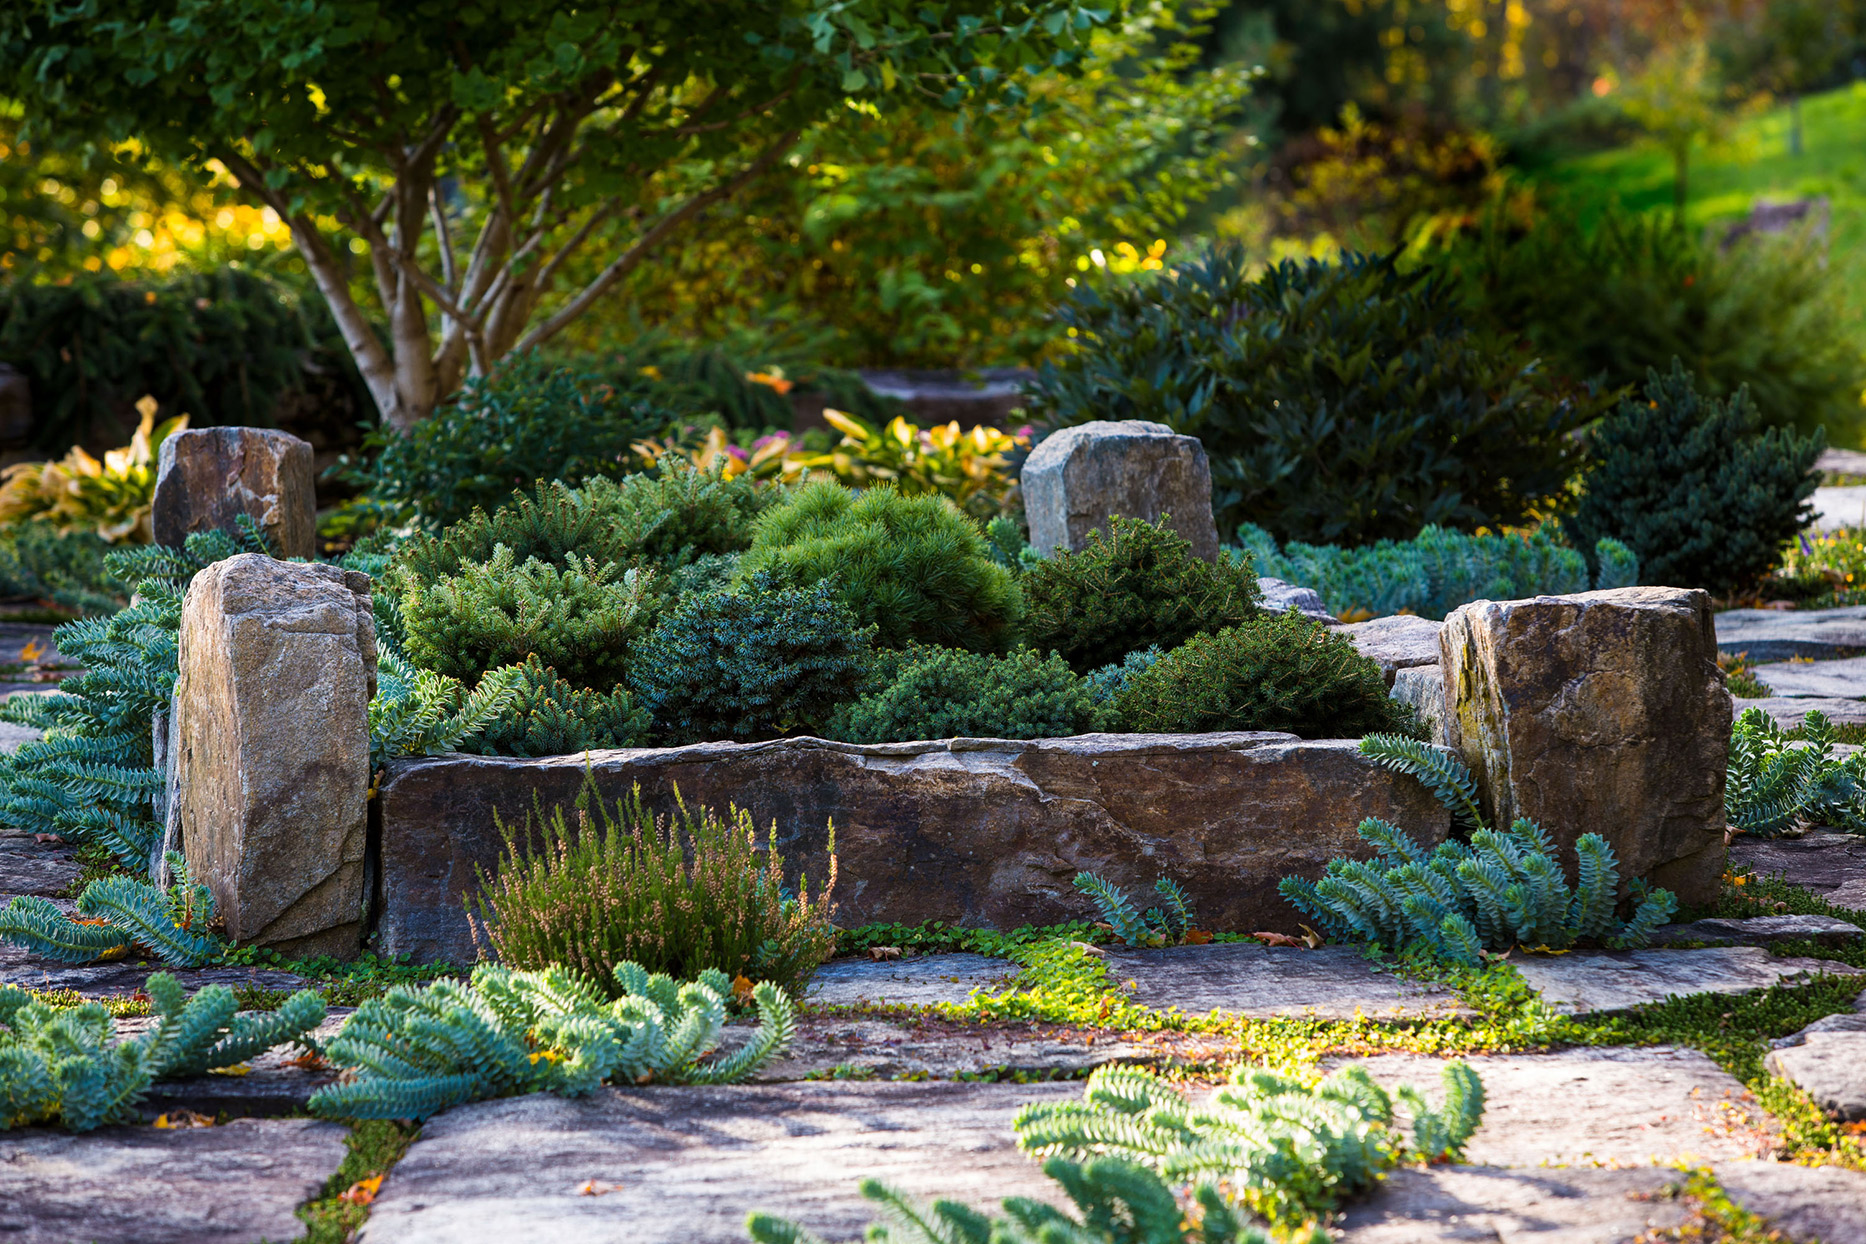 planting bed with stones and lush greenery